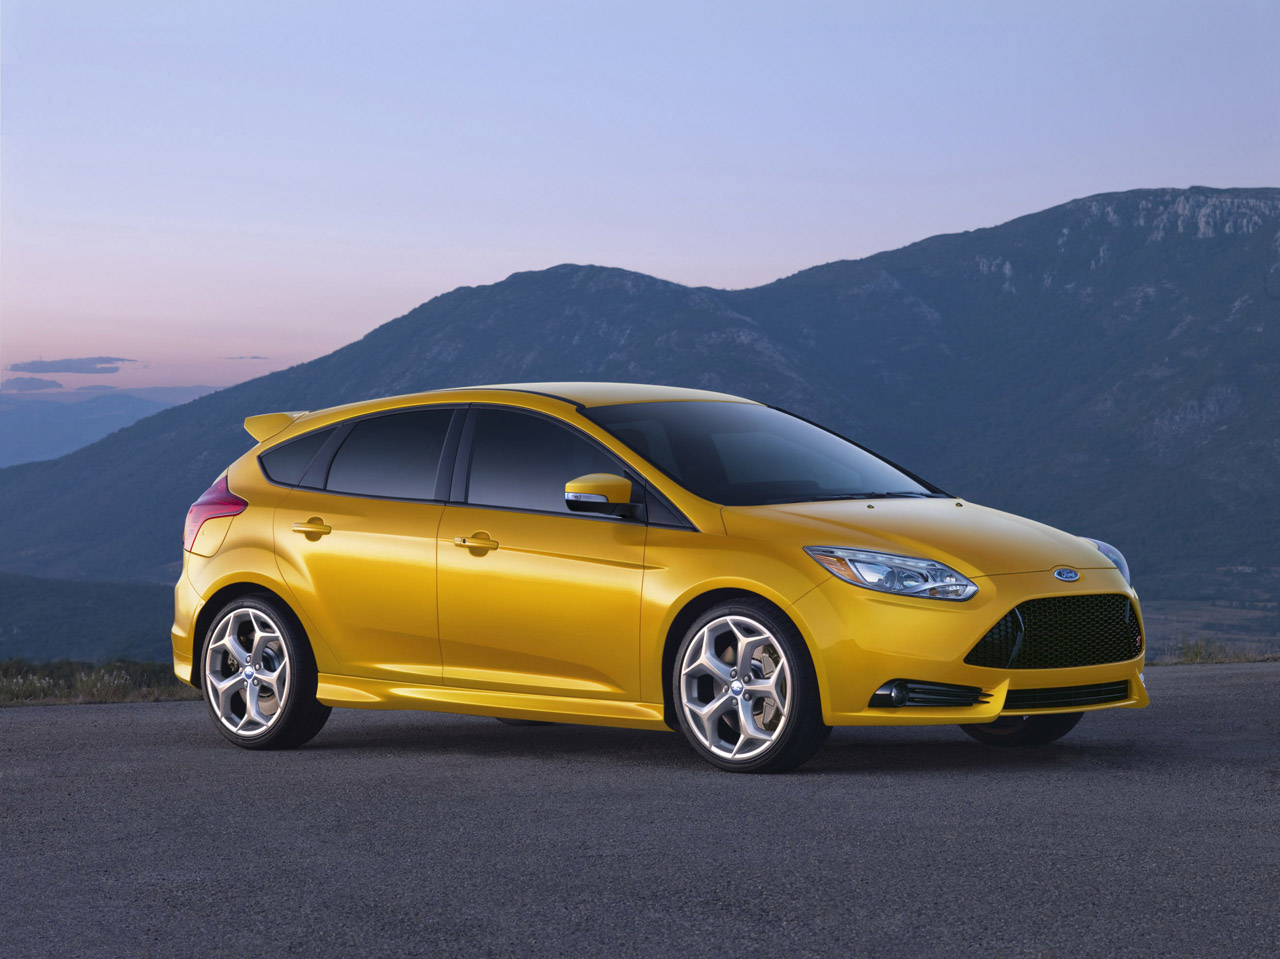 2013 ford focus st gets 23 mpg city 32 mpg highway ratings autoblog. Black Bedroom Furniture Sets. Home Design Ideas